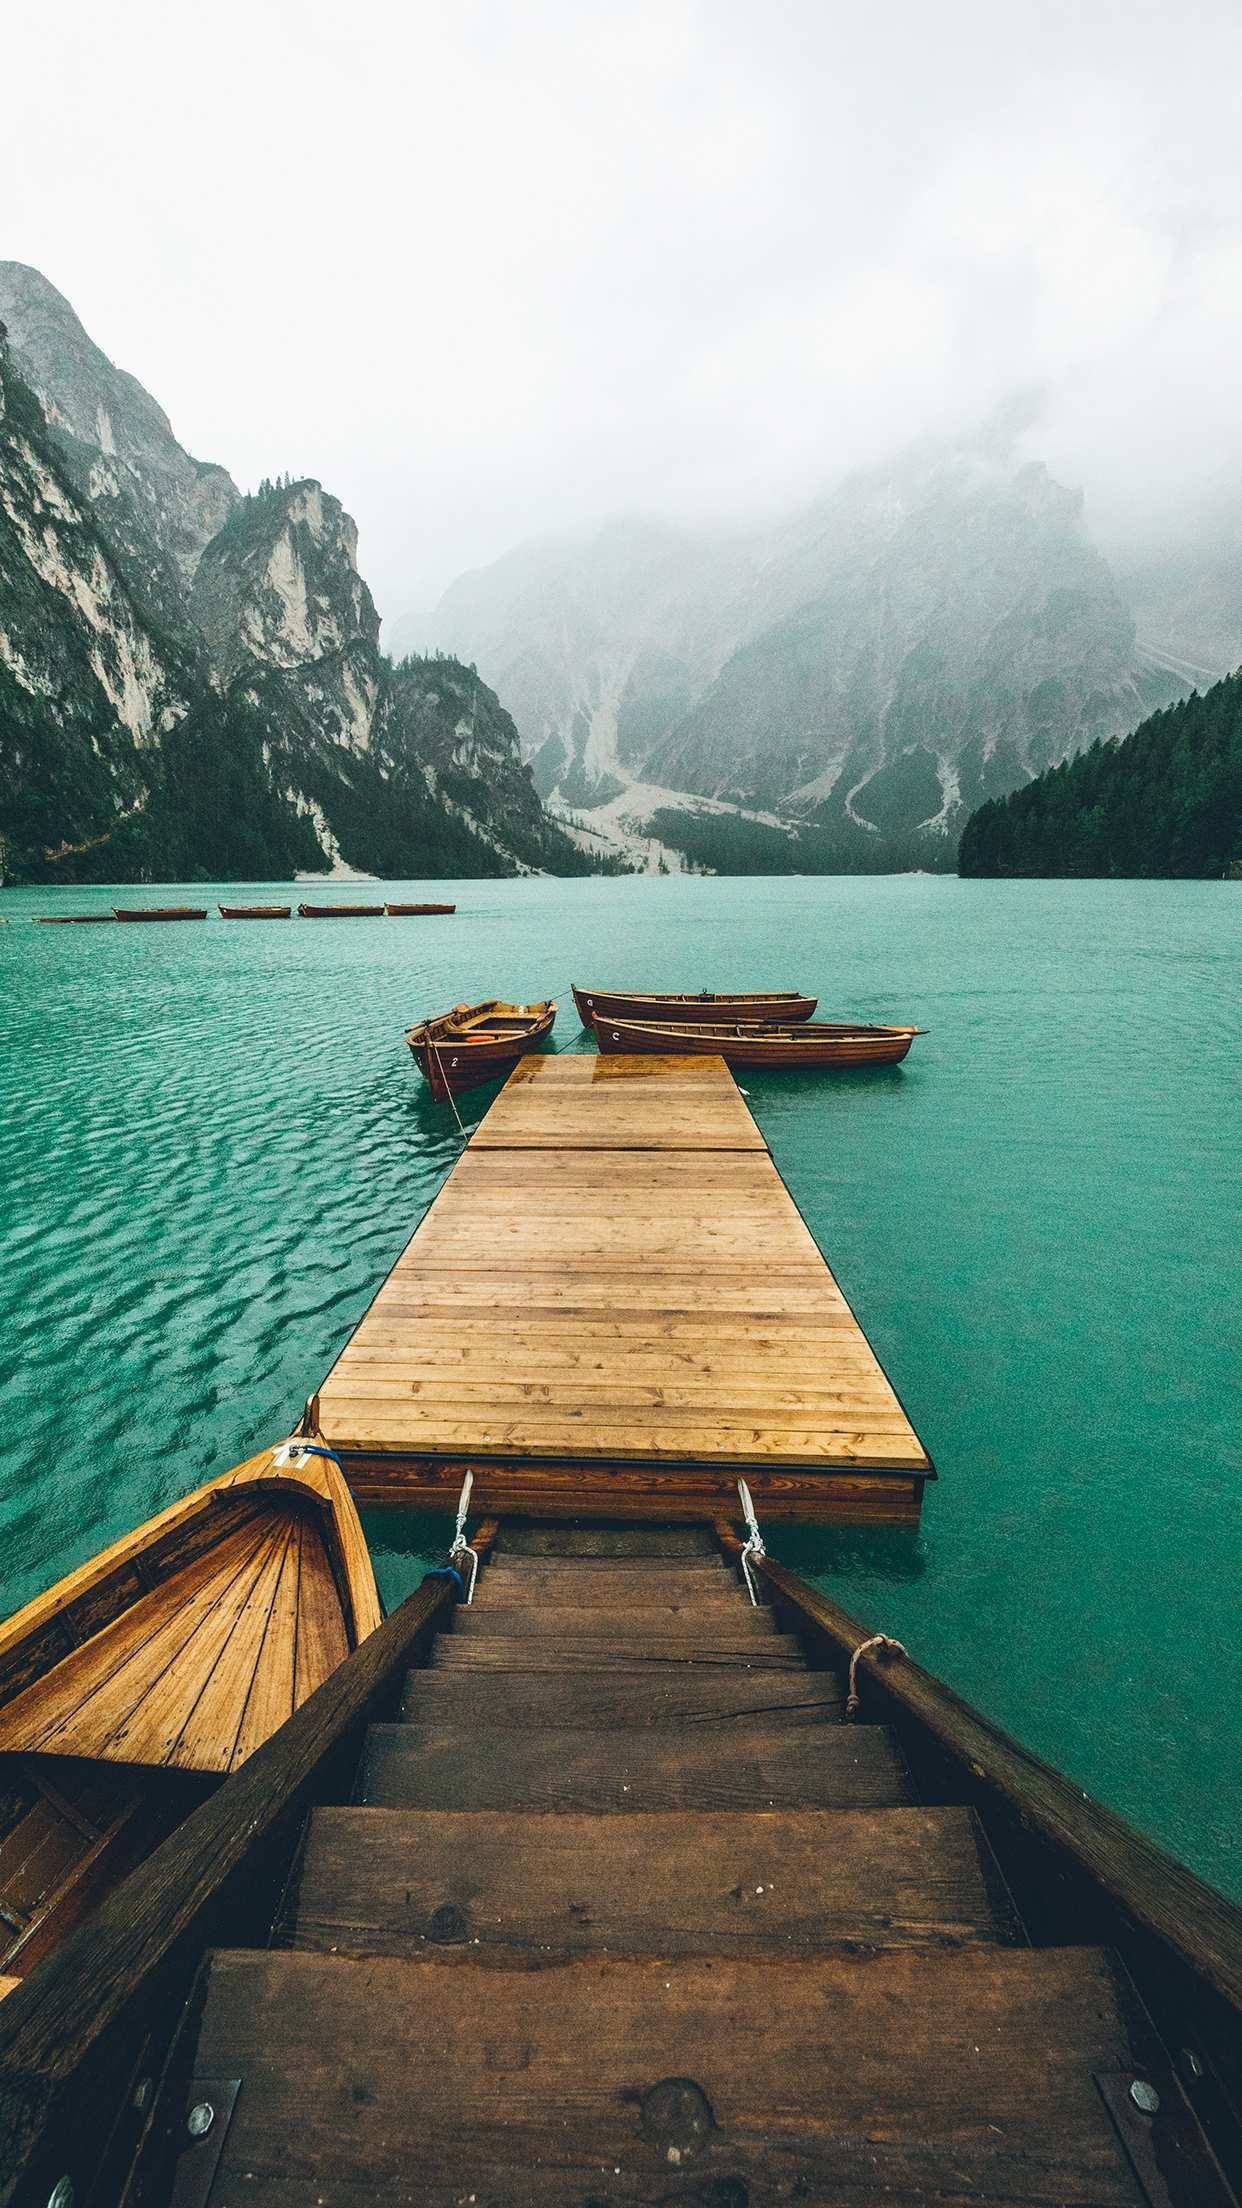 Pier Boats Nature Lake Iphone Wallpaper In 2019 Nature